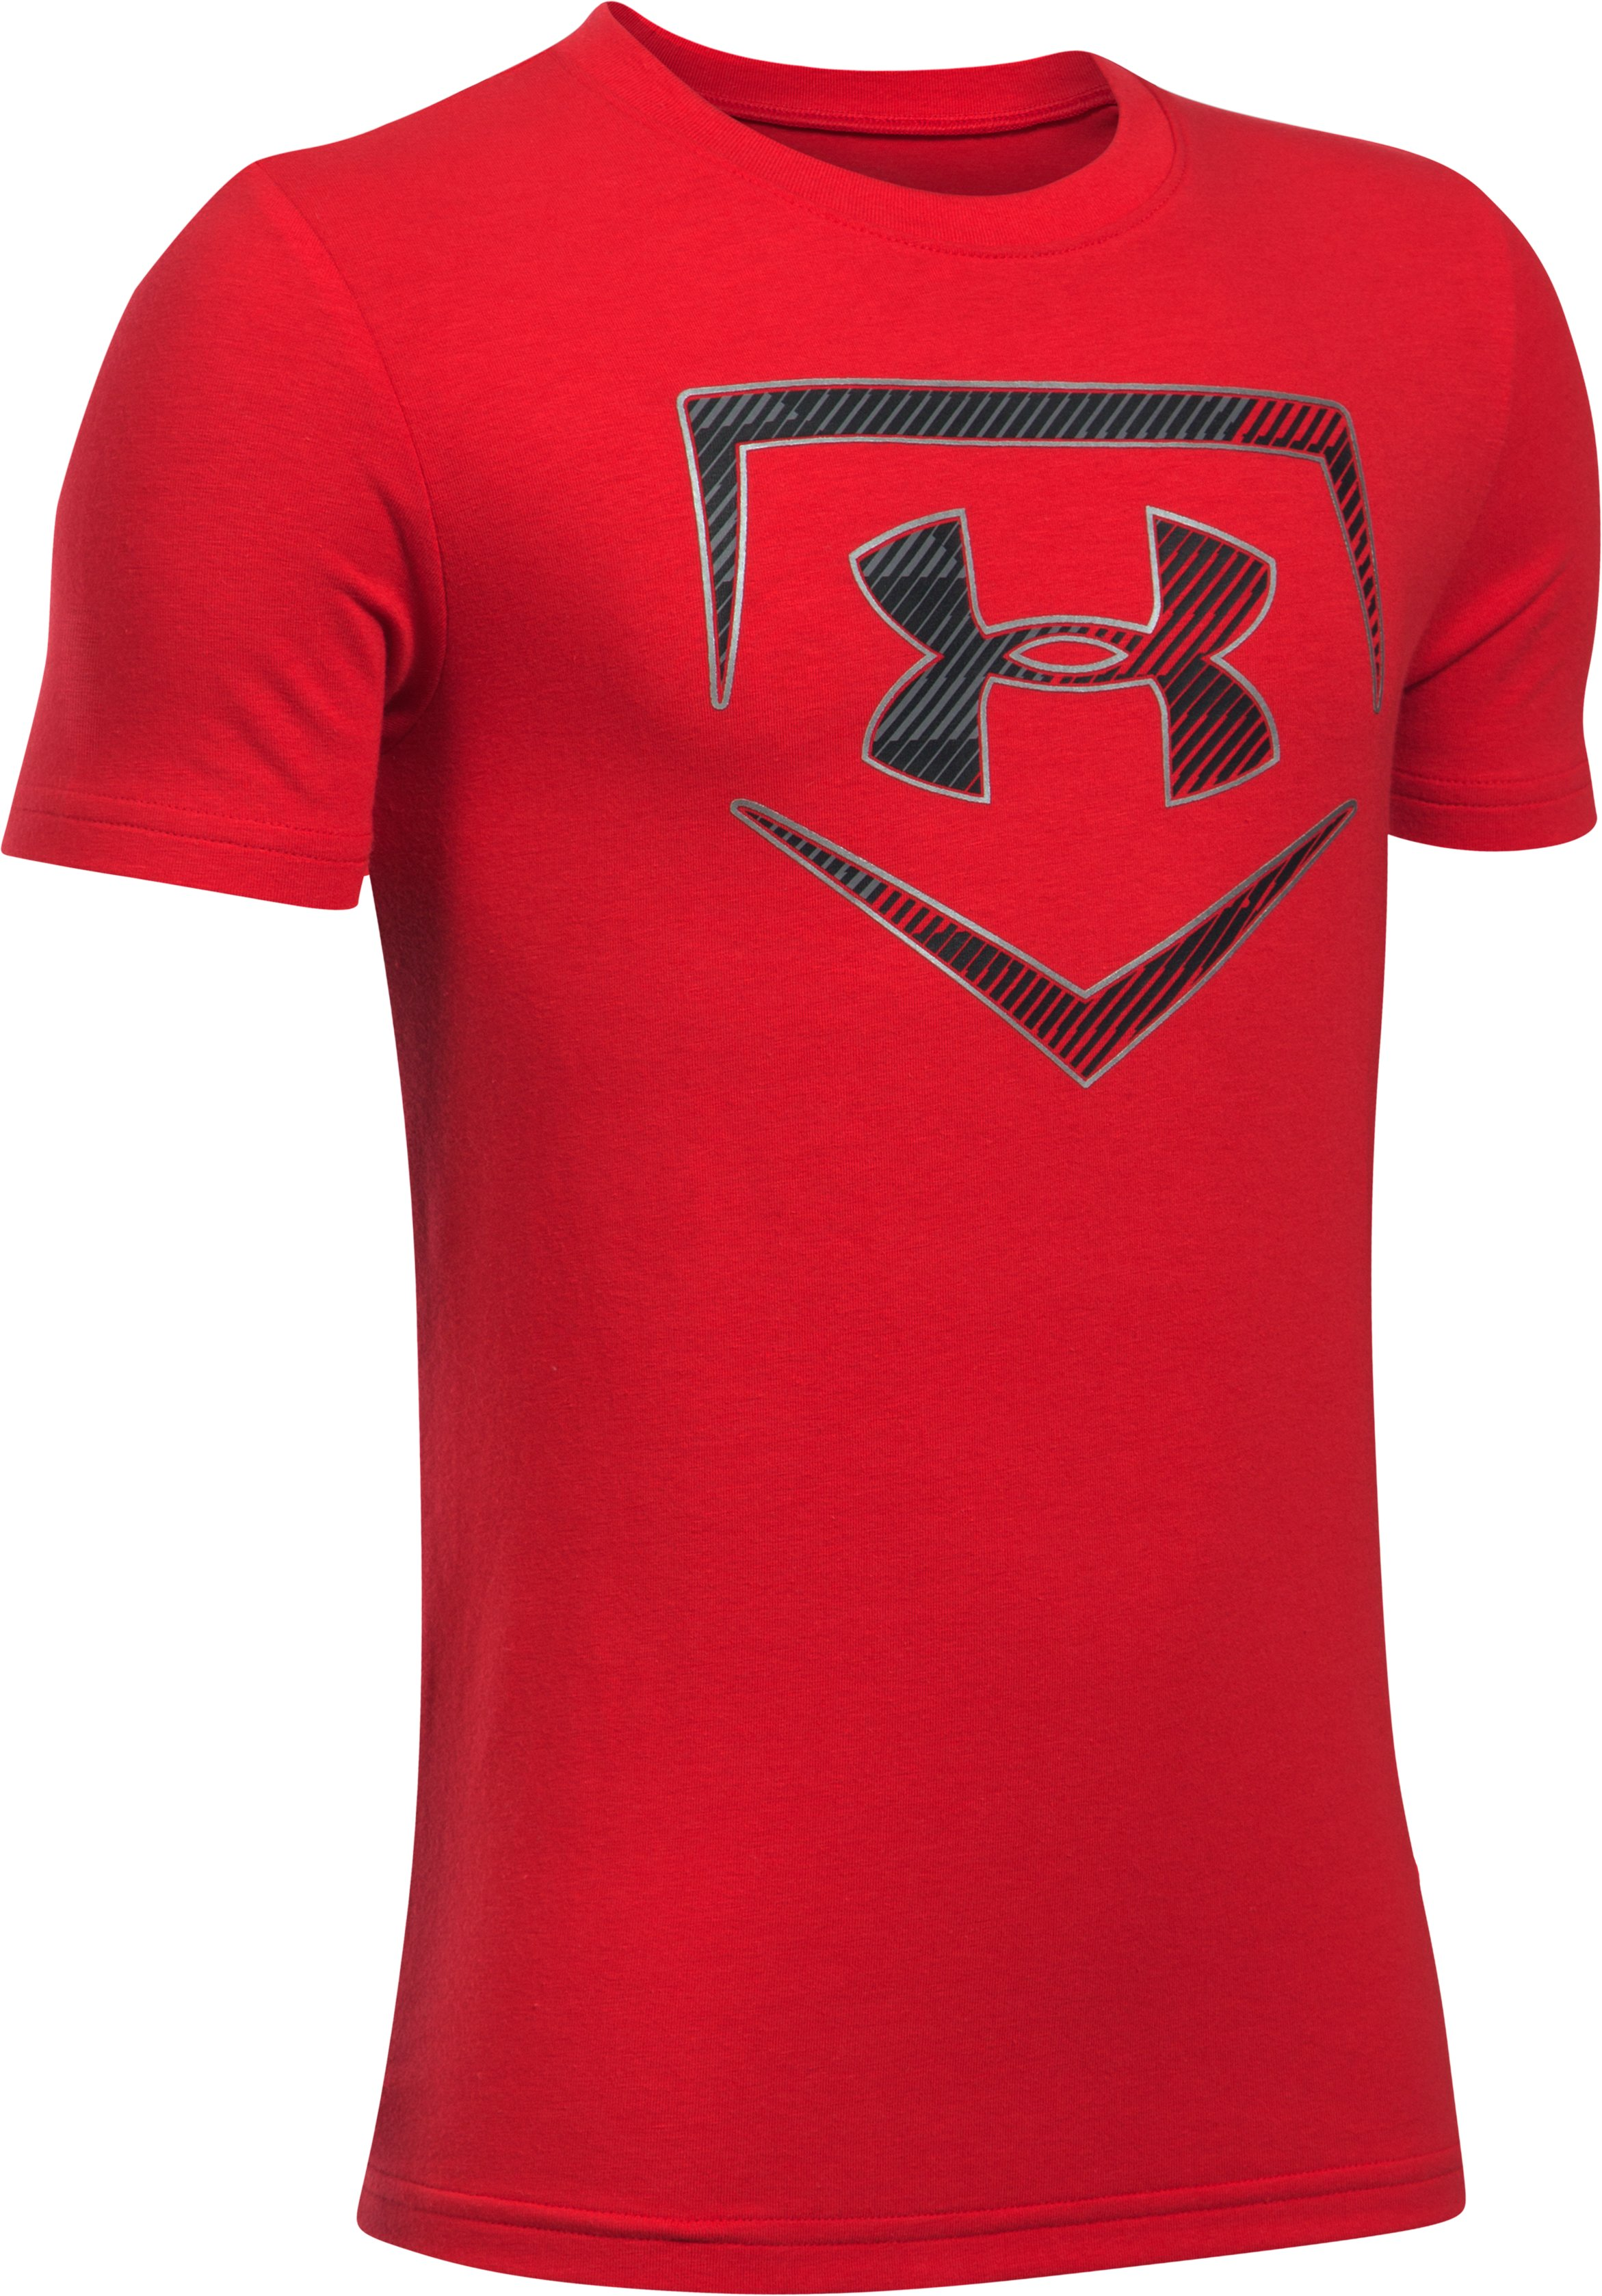 Boys' UA Baseball Logo T-Shirt, Red, undefined